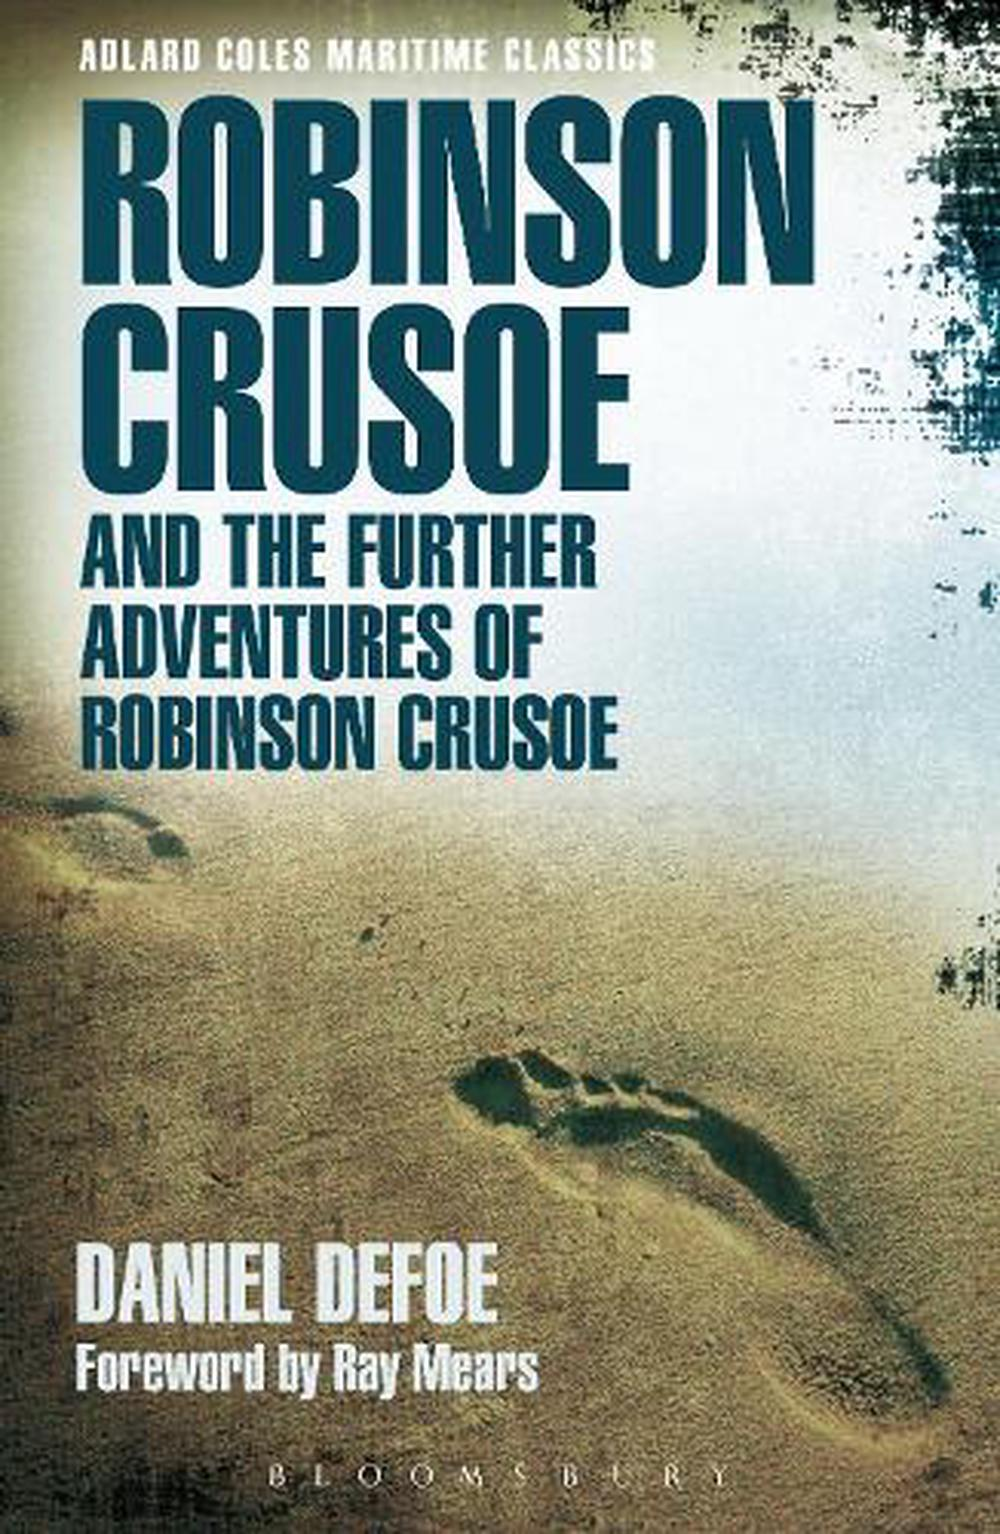 Robinson Crusoe Details About Robinson Crusoe And The Further Adventures Of Robinson Crusoe By Daniel Defoe E